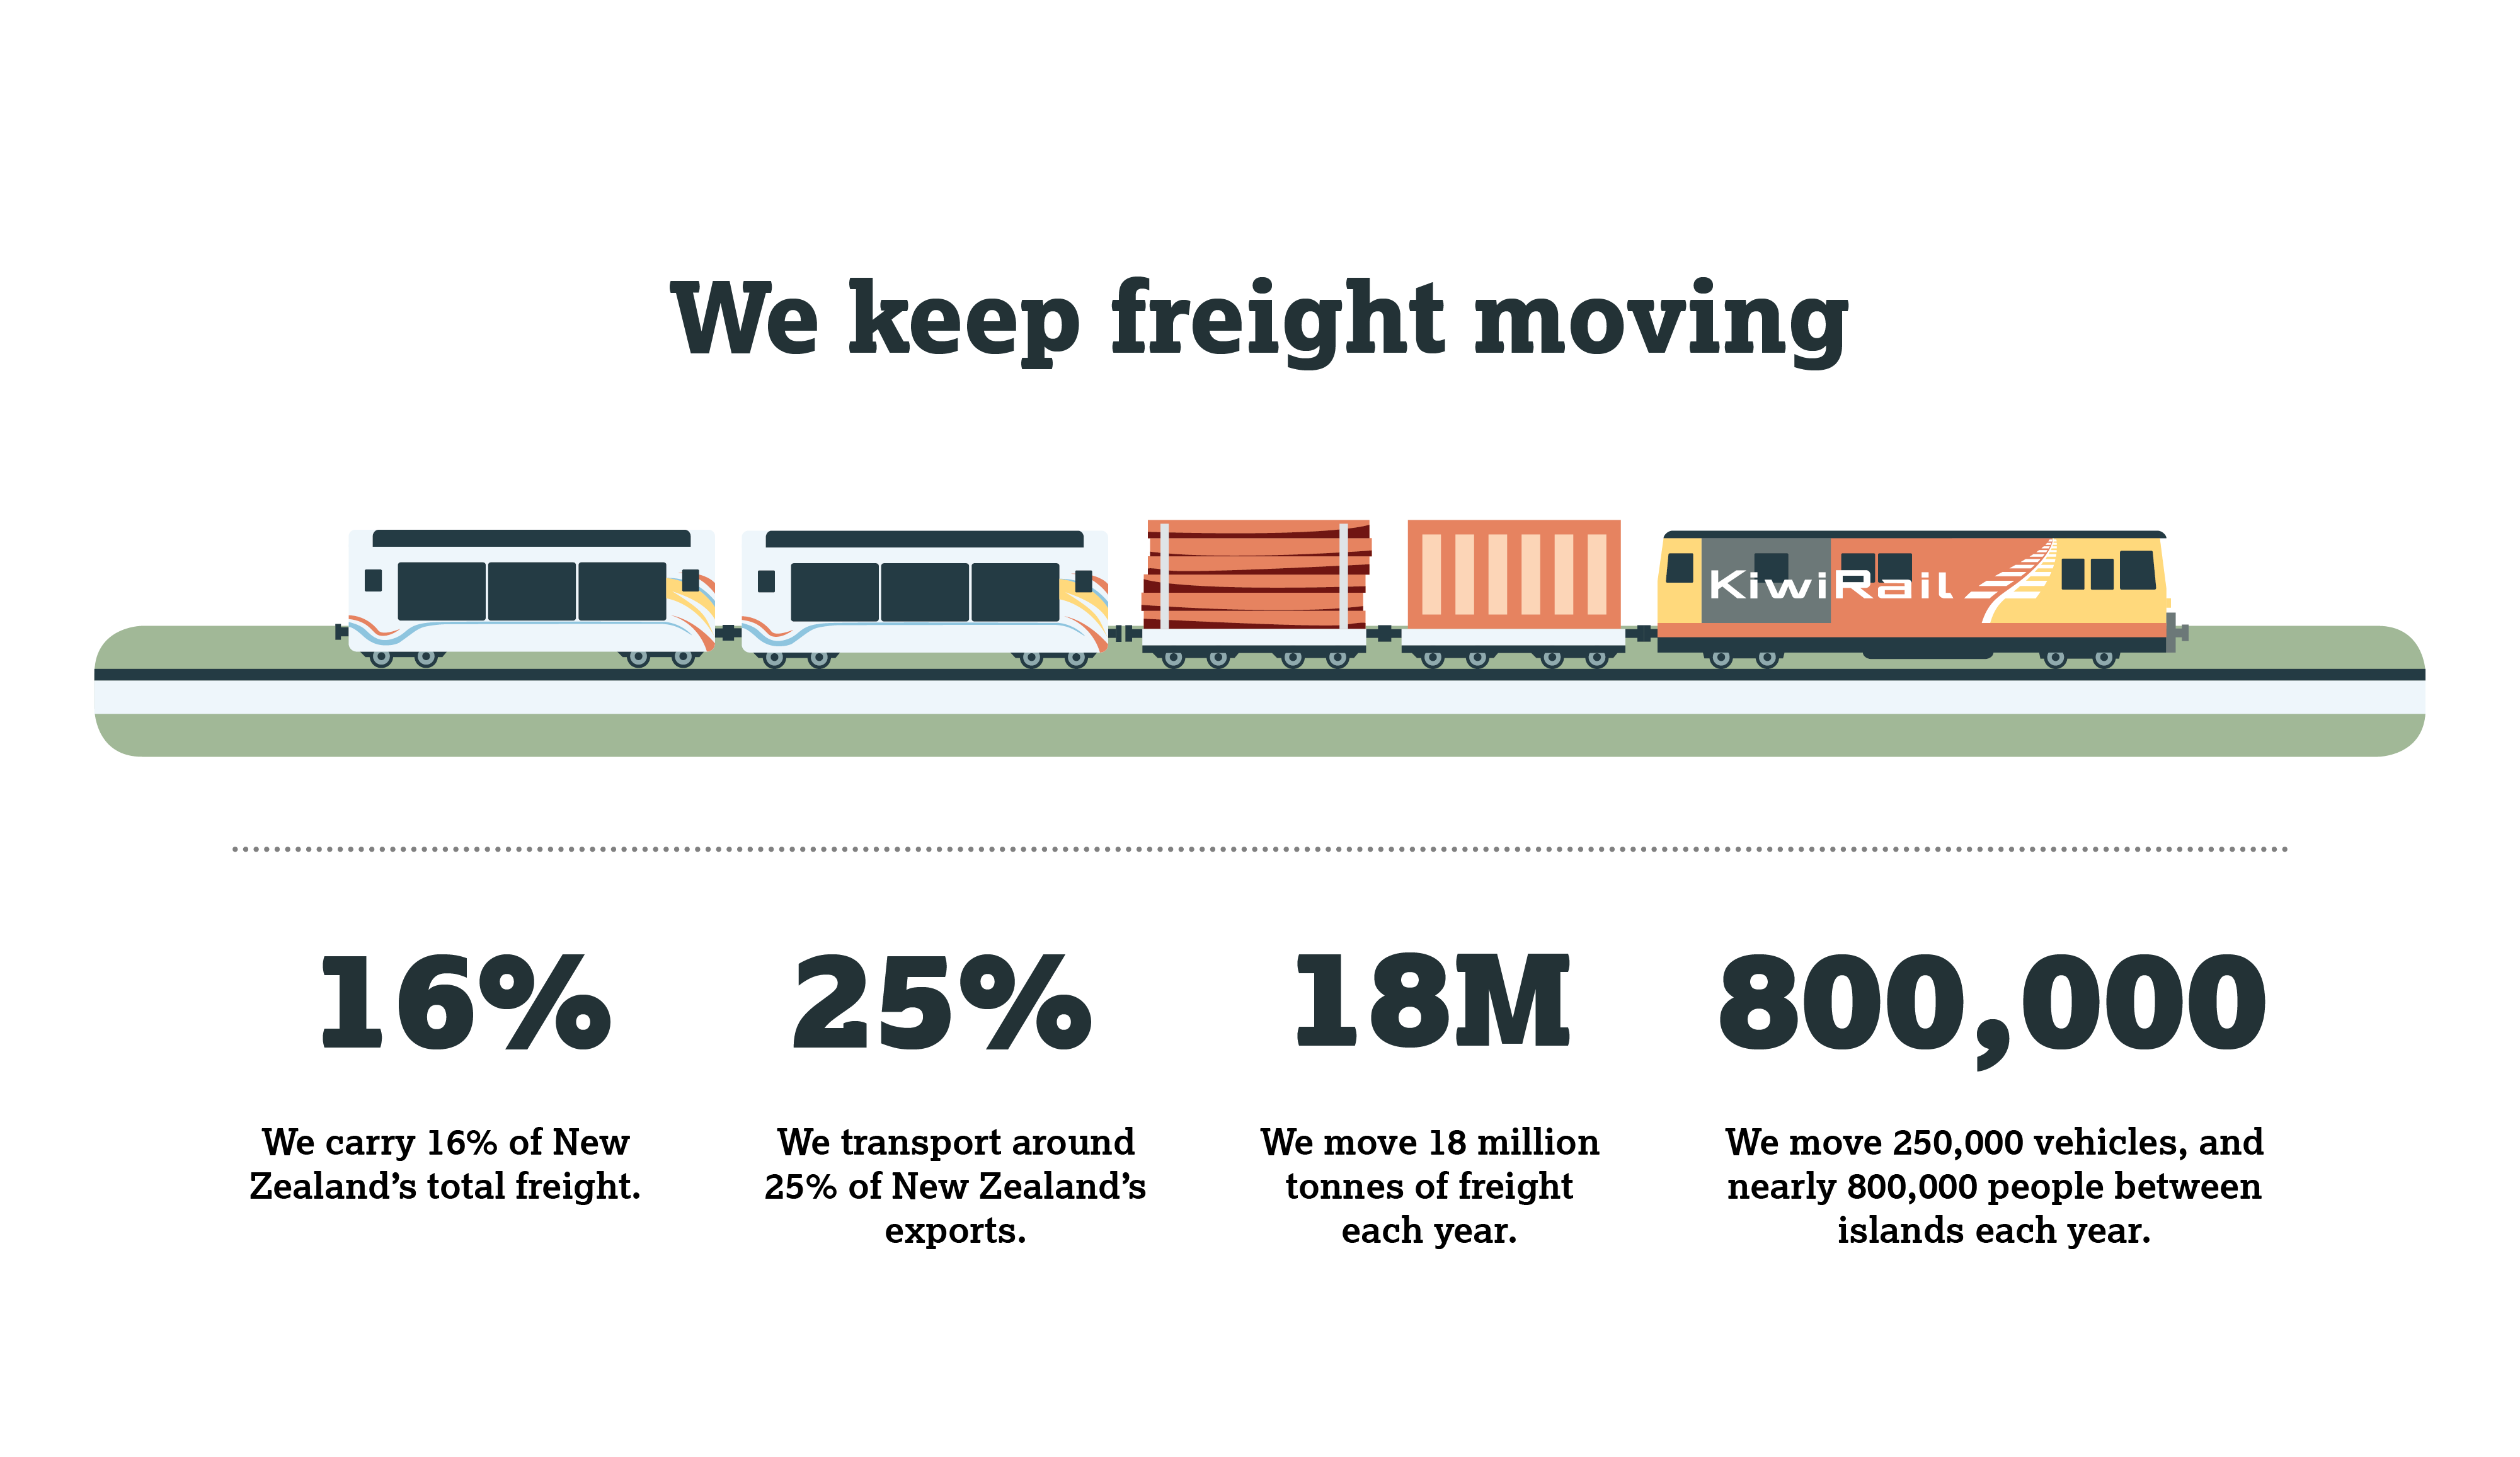 We keep freight moving v4